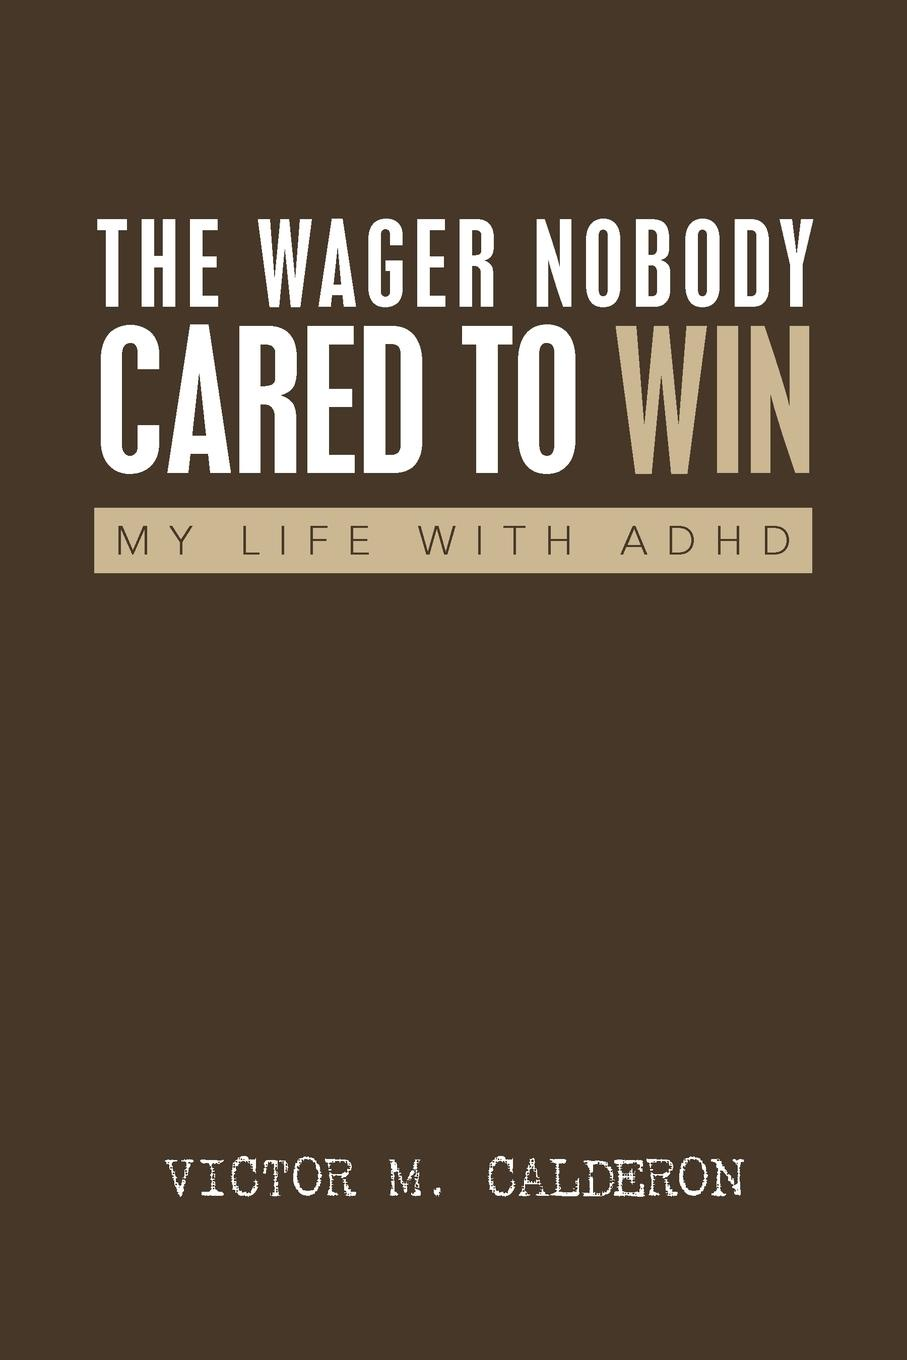 Victor M. Calderon The Wager Nobody Cared to Win. My Life with ADHD marguerite kaye the captain s wicked wager